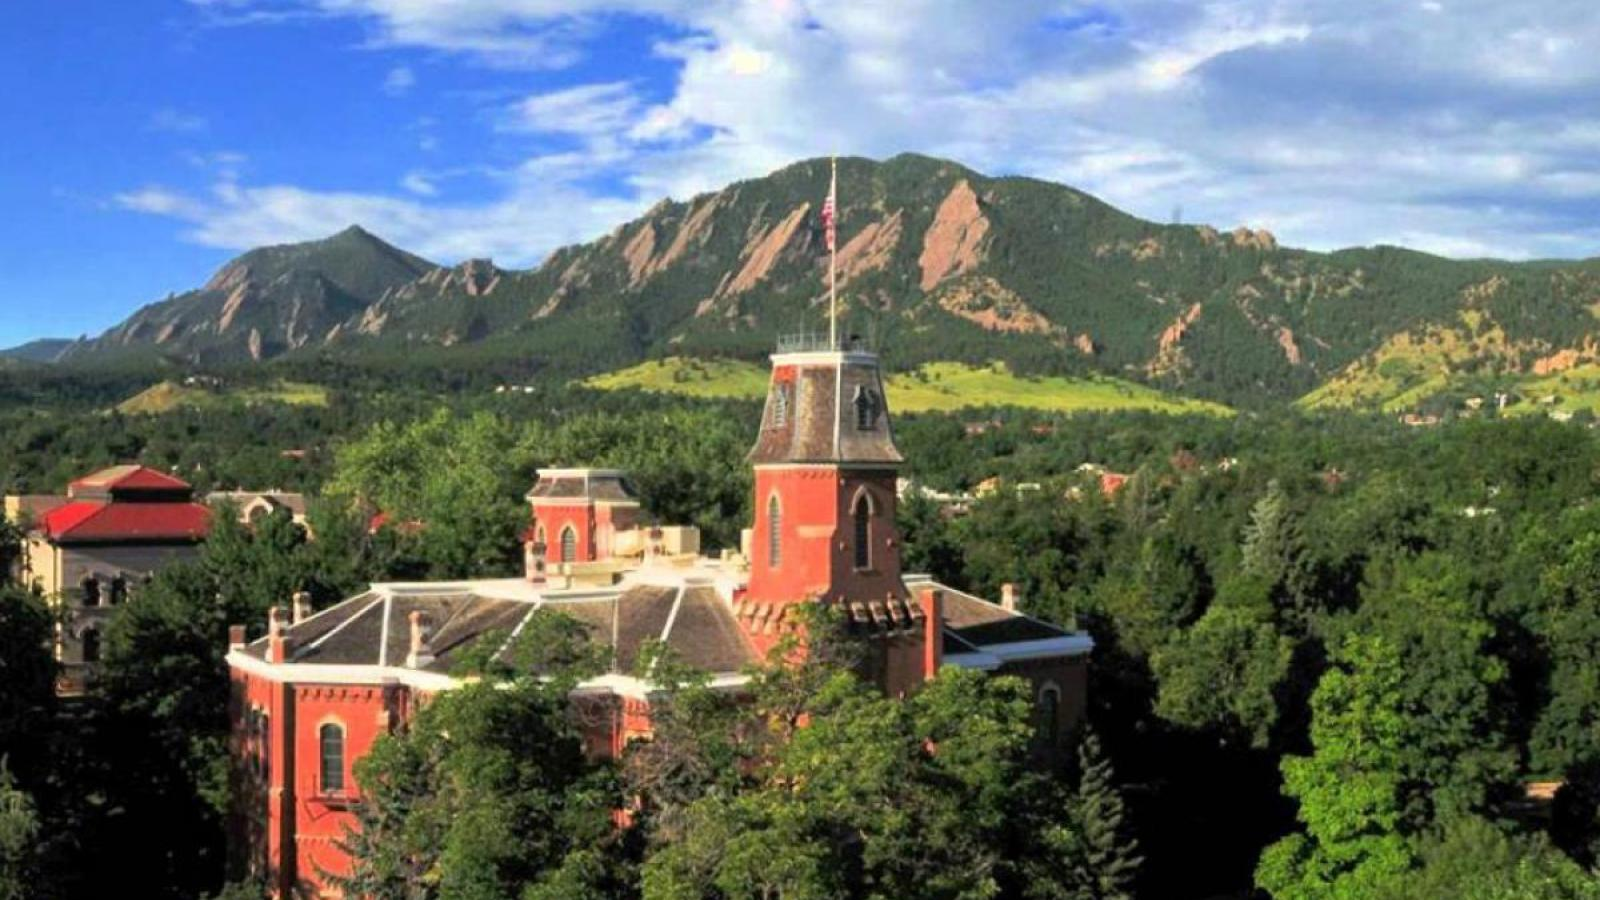 Old main building in front of the flatirons